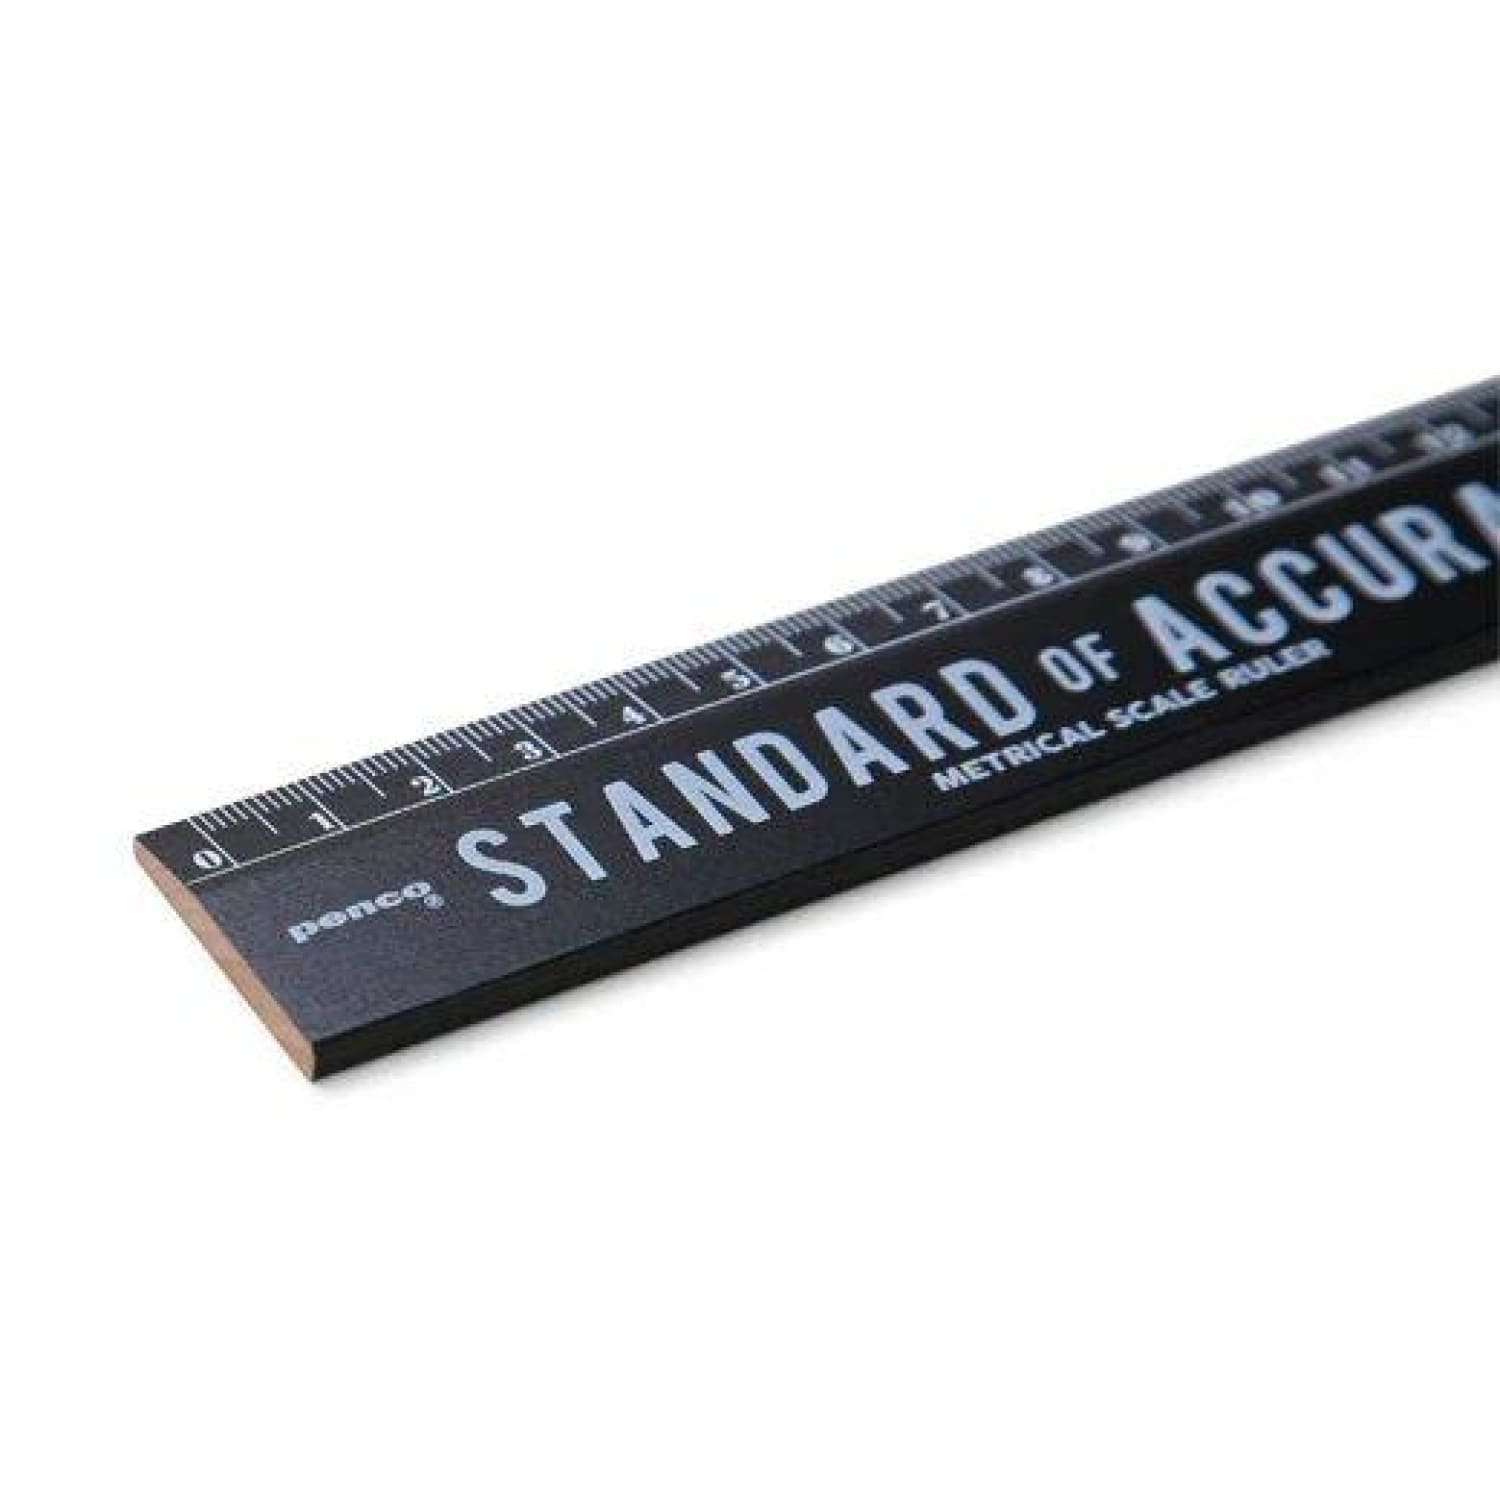 Black Wooden Ruler Hightide, Holder, Home Decor, Homewares,